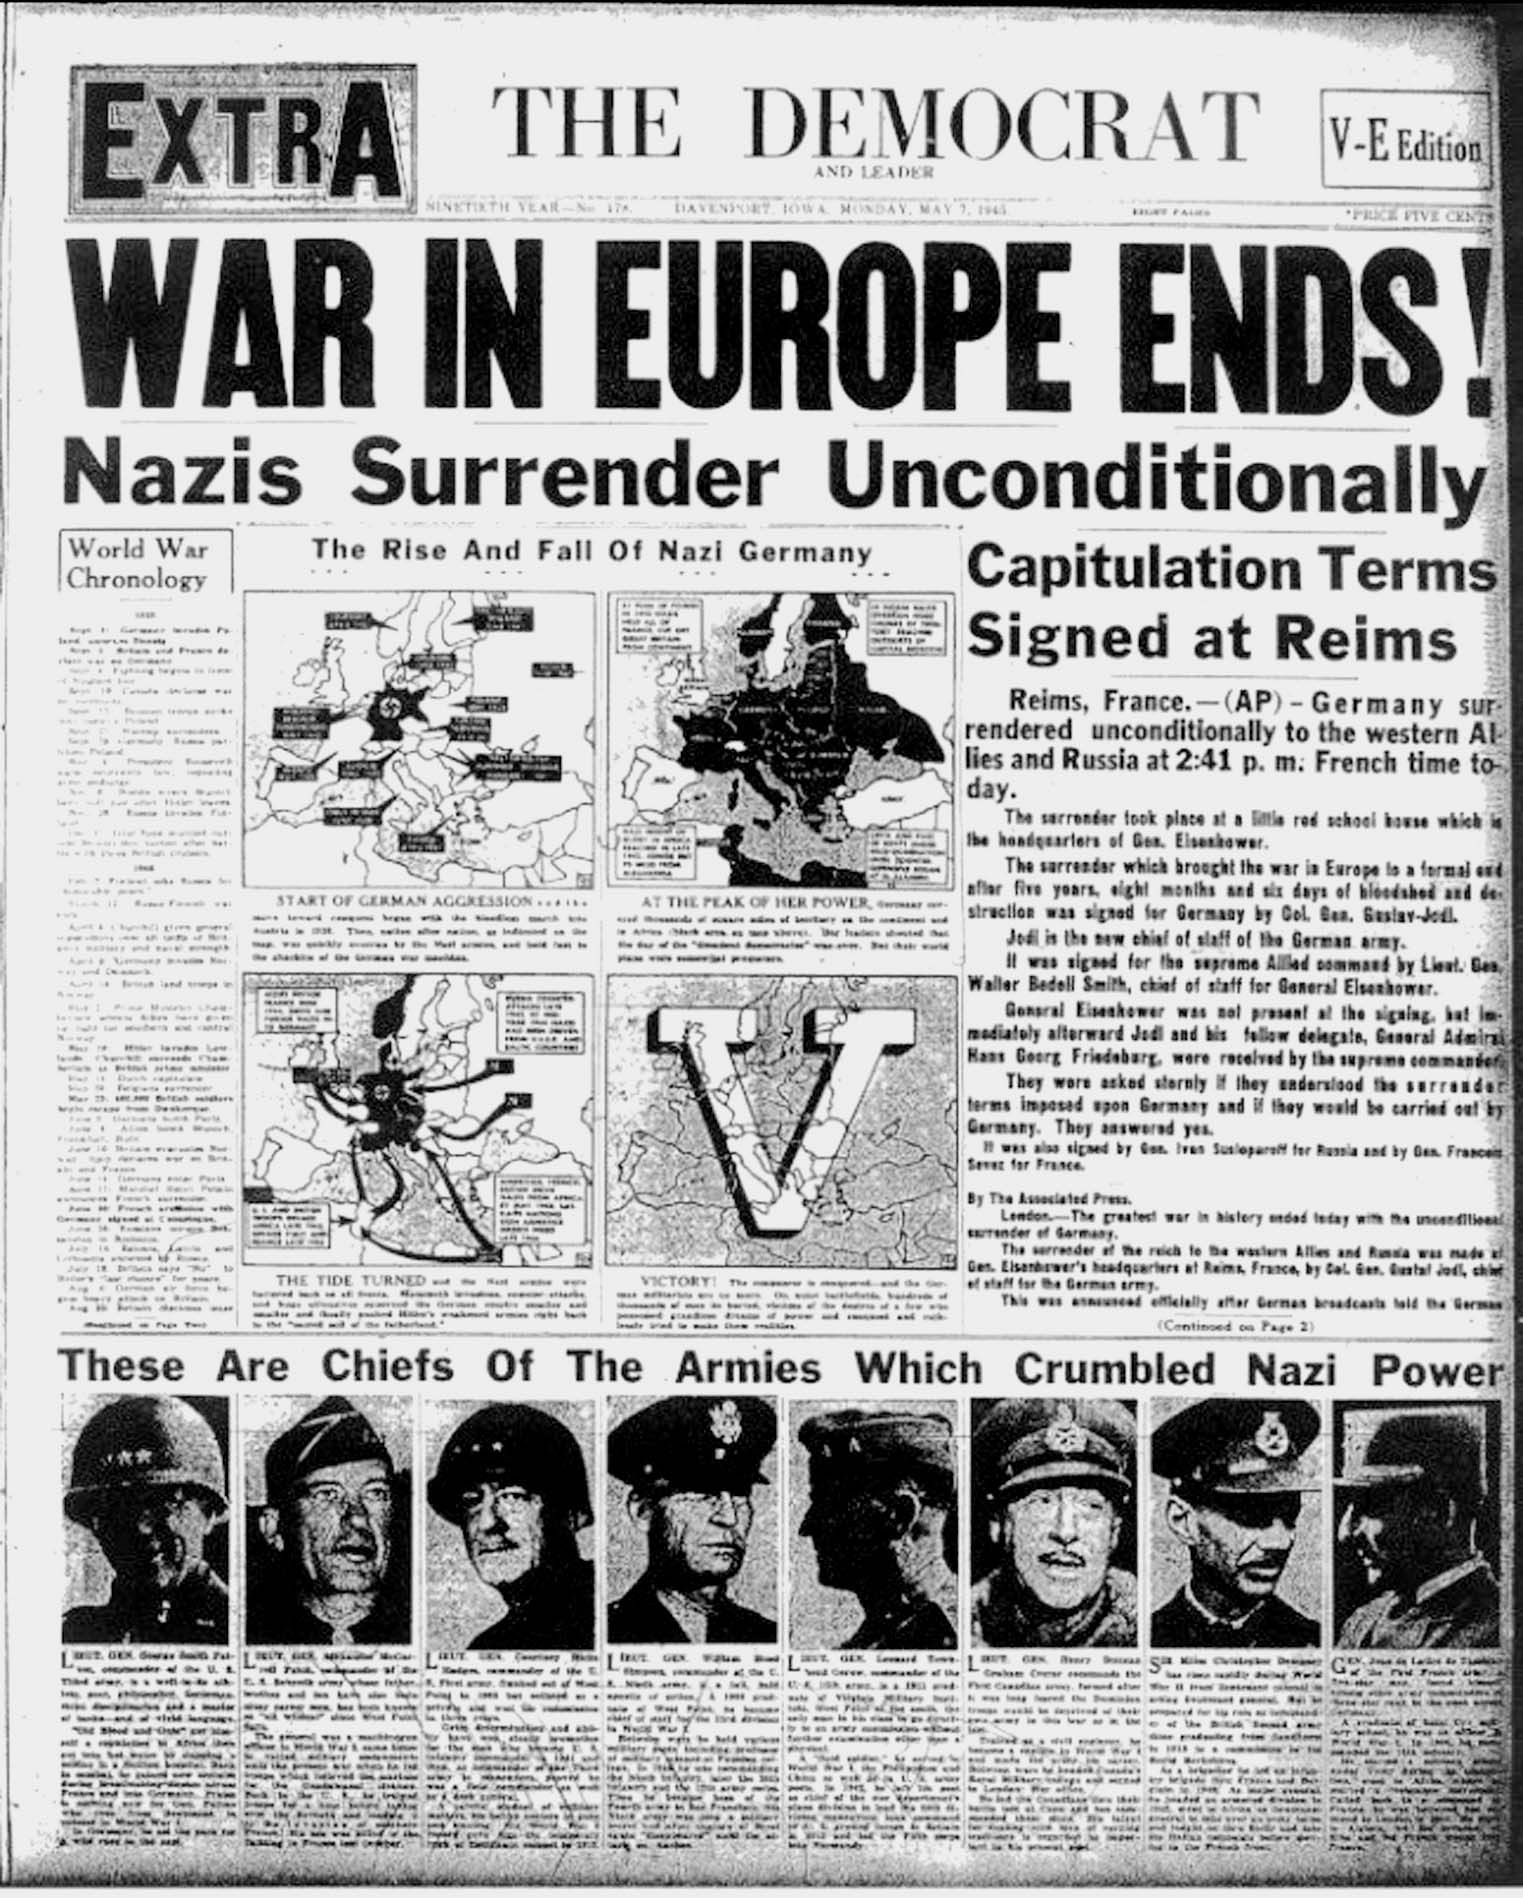 start of world war ii world war start of world war ii 1939 1940 world war news and 1 1939